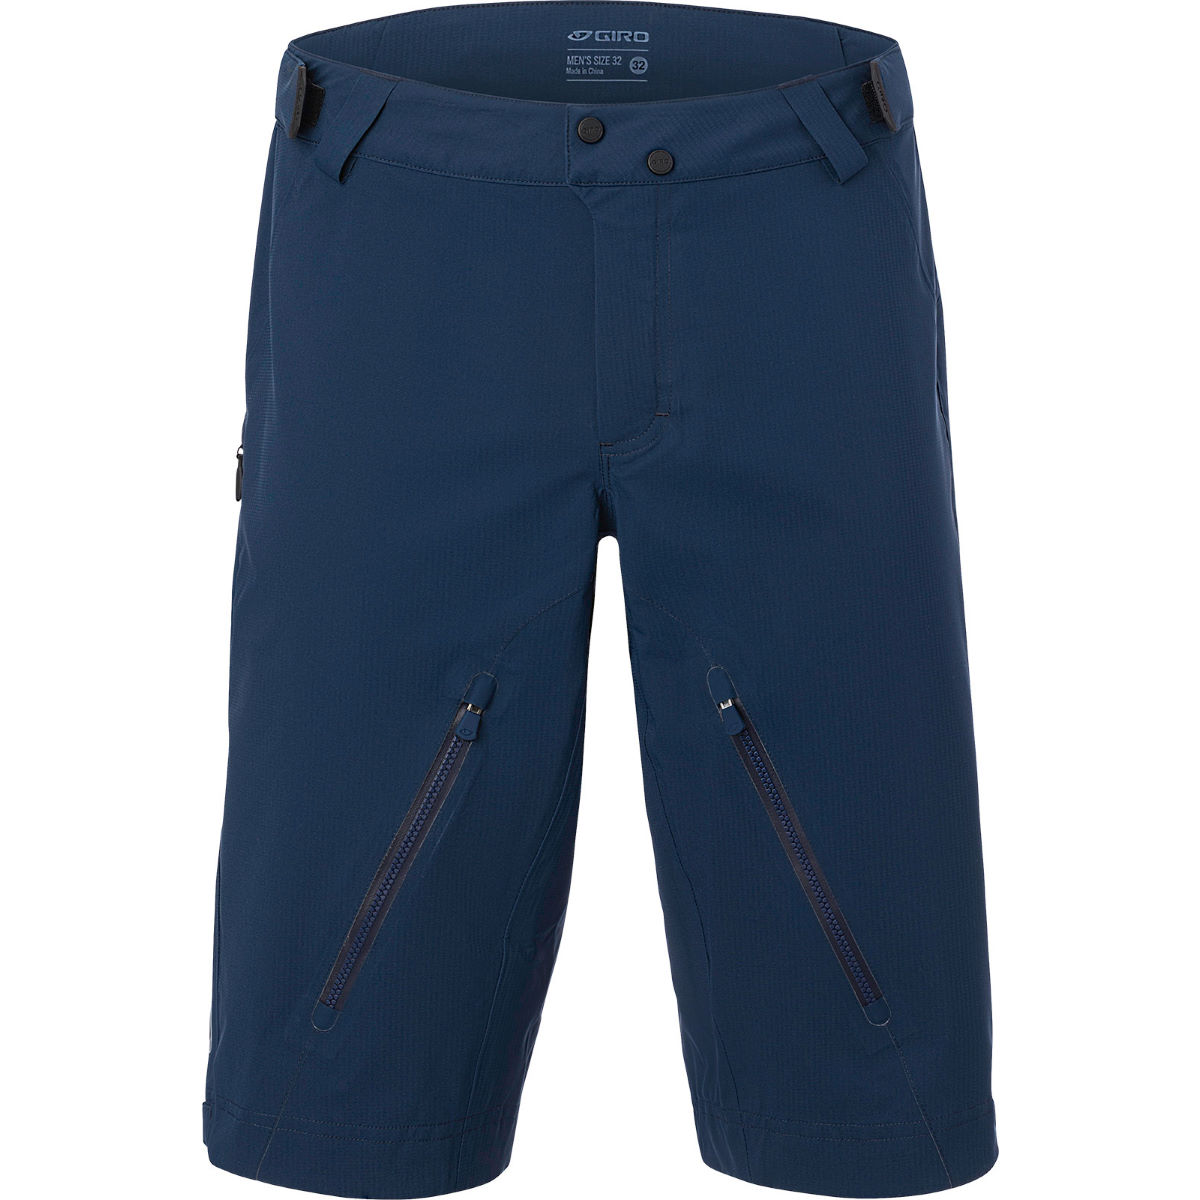 Giro Giro Havoc H20 Short   Baggy Shorts